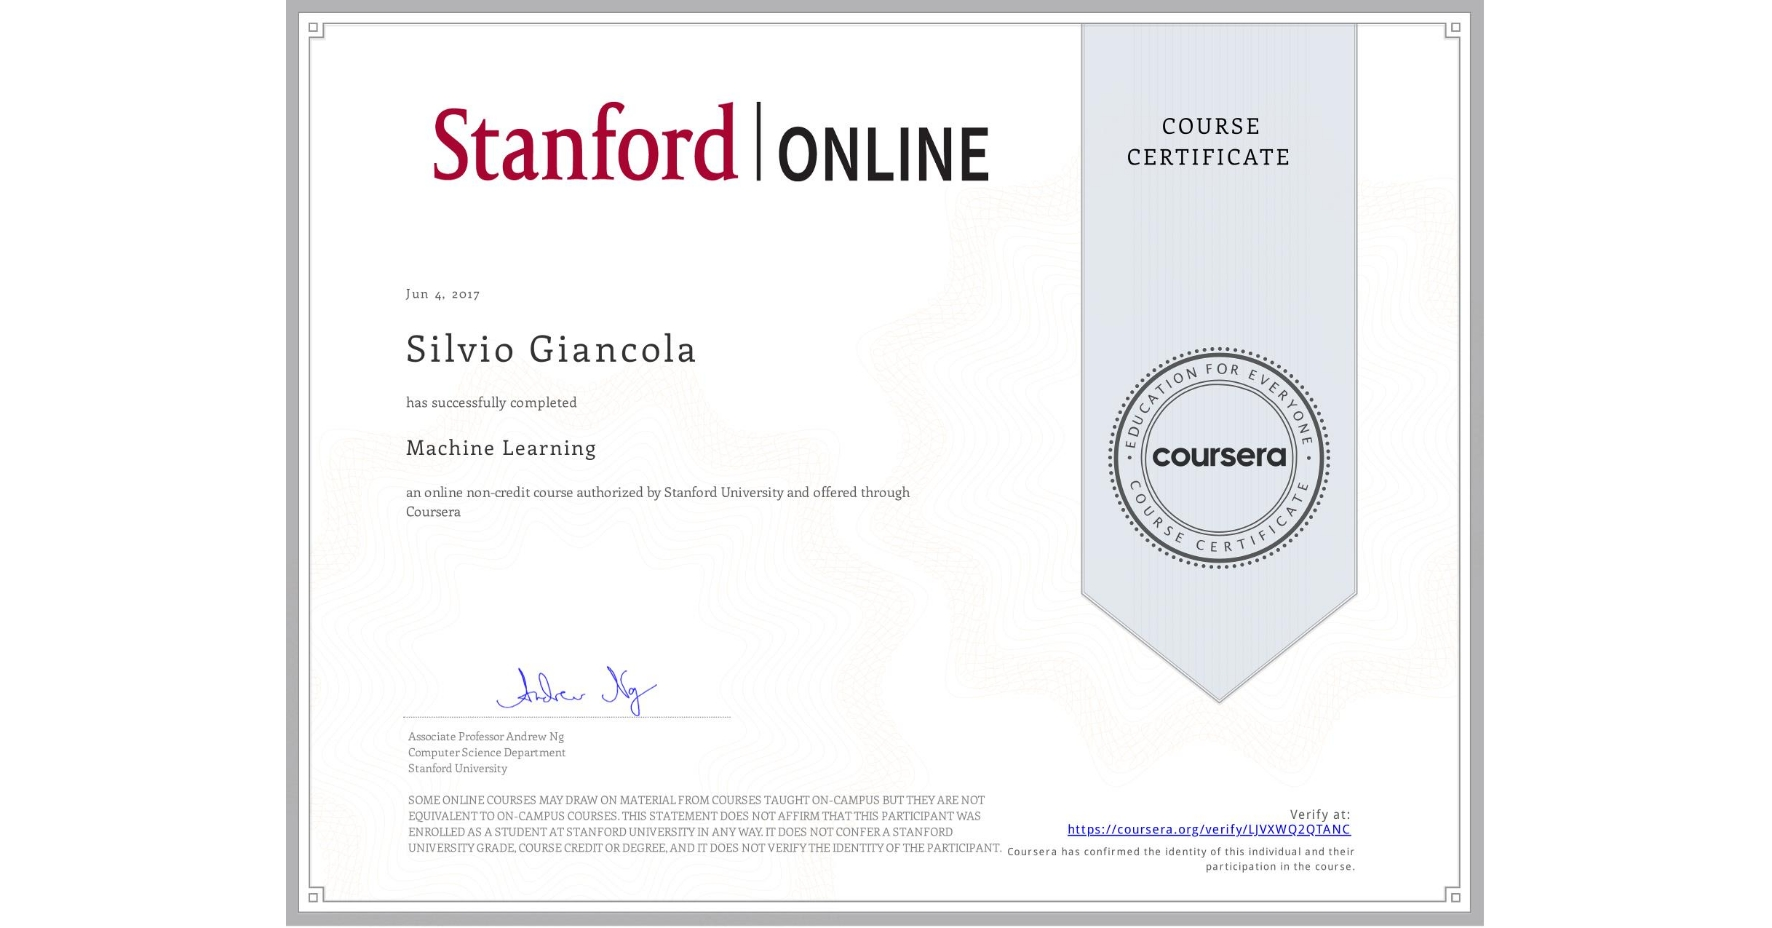 View certificate for Silvio Giancola, Machine Learning, an online non-credit course authorized by Stanford University and offered through Coursera